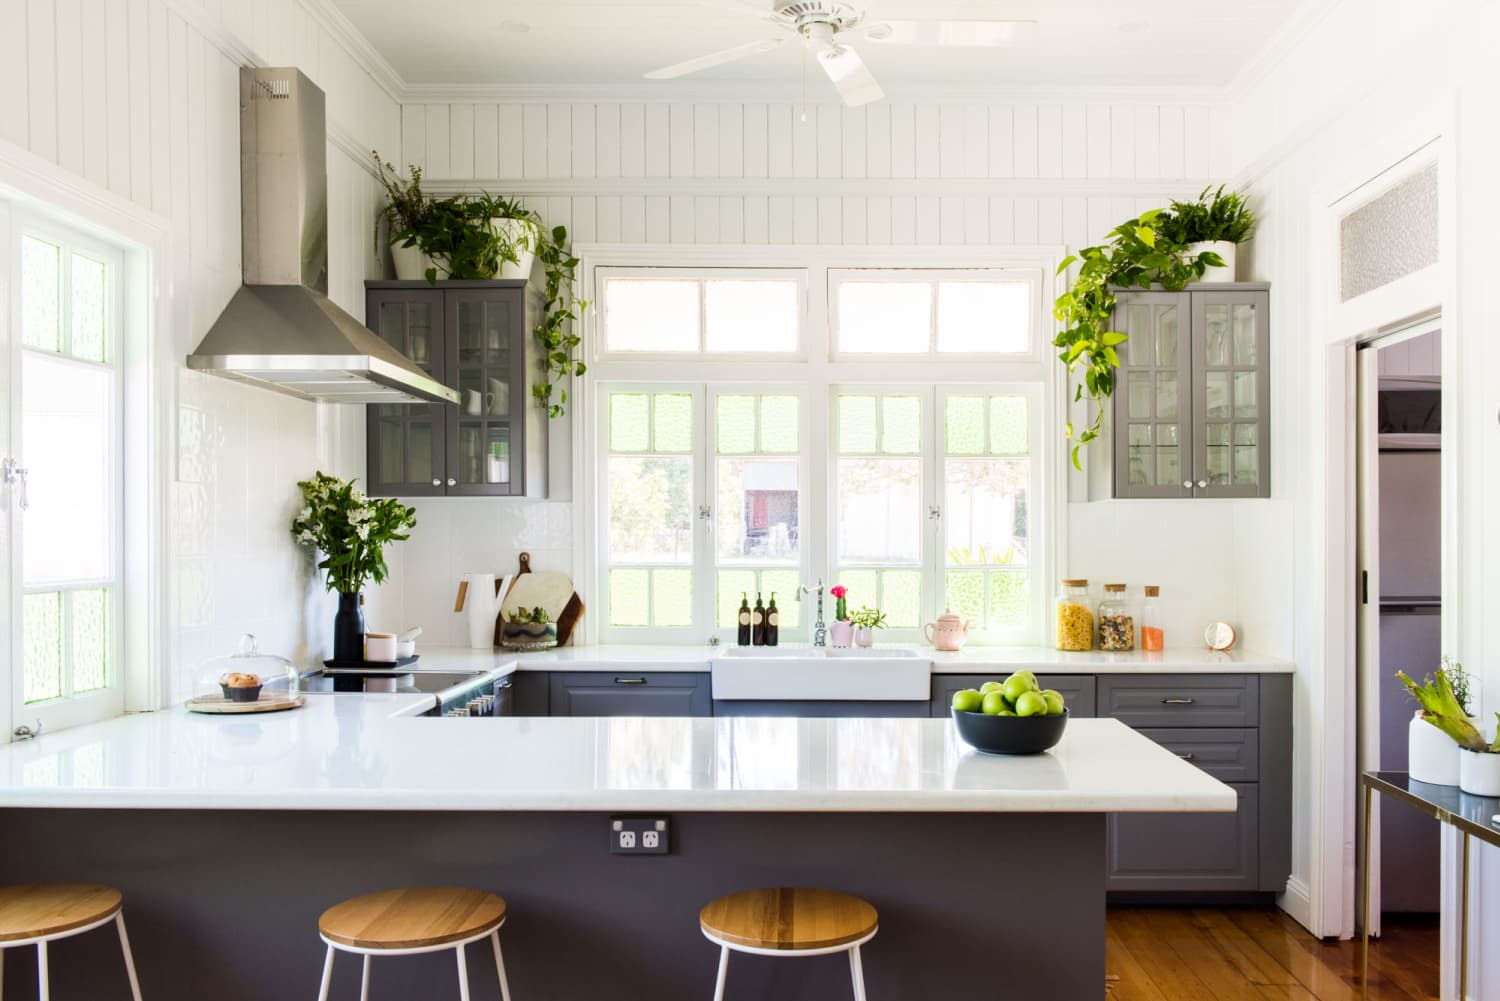 12 Best Kitchen Plants - Ideal Houseplants to Live In ...